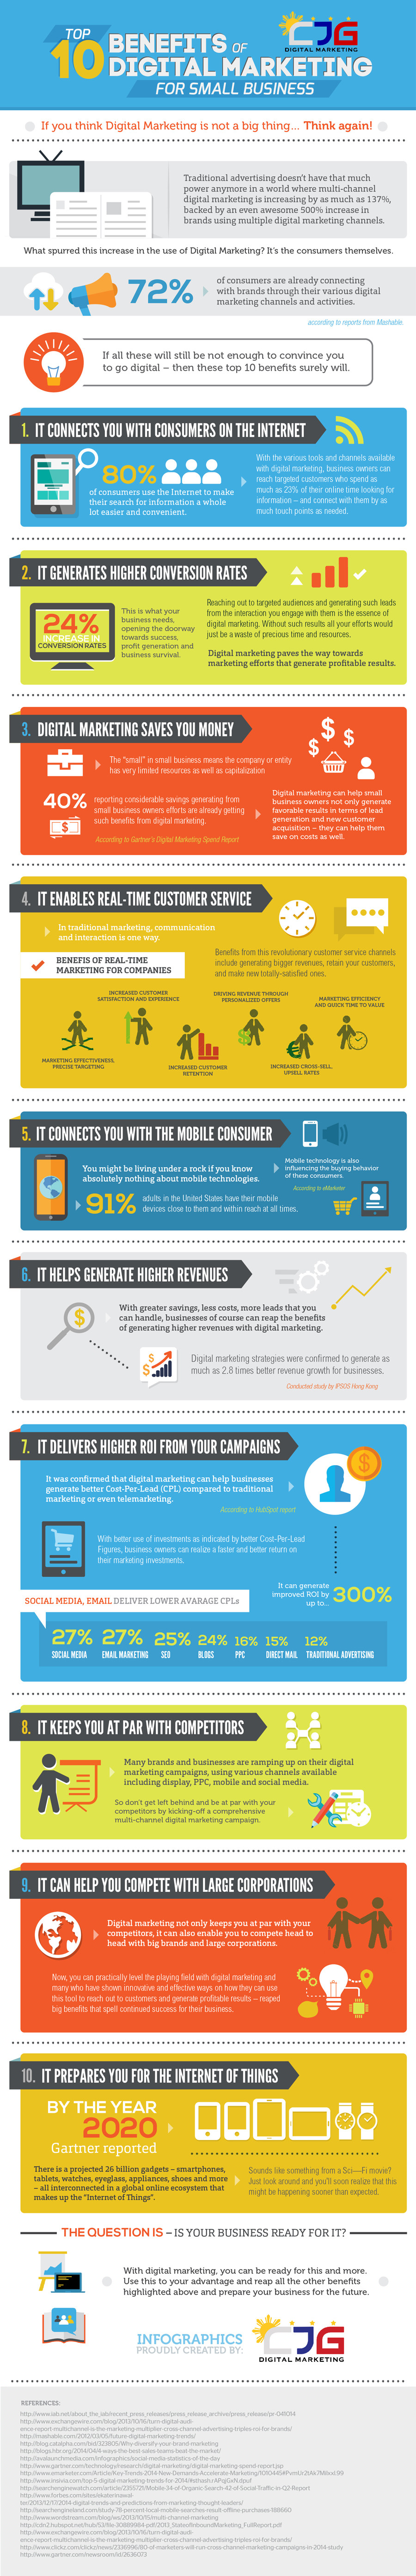 Top_10_Benefits_of_Digital_Marketing_for_Small_Business.jpg